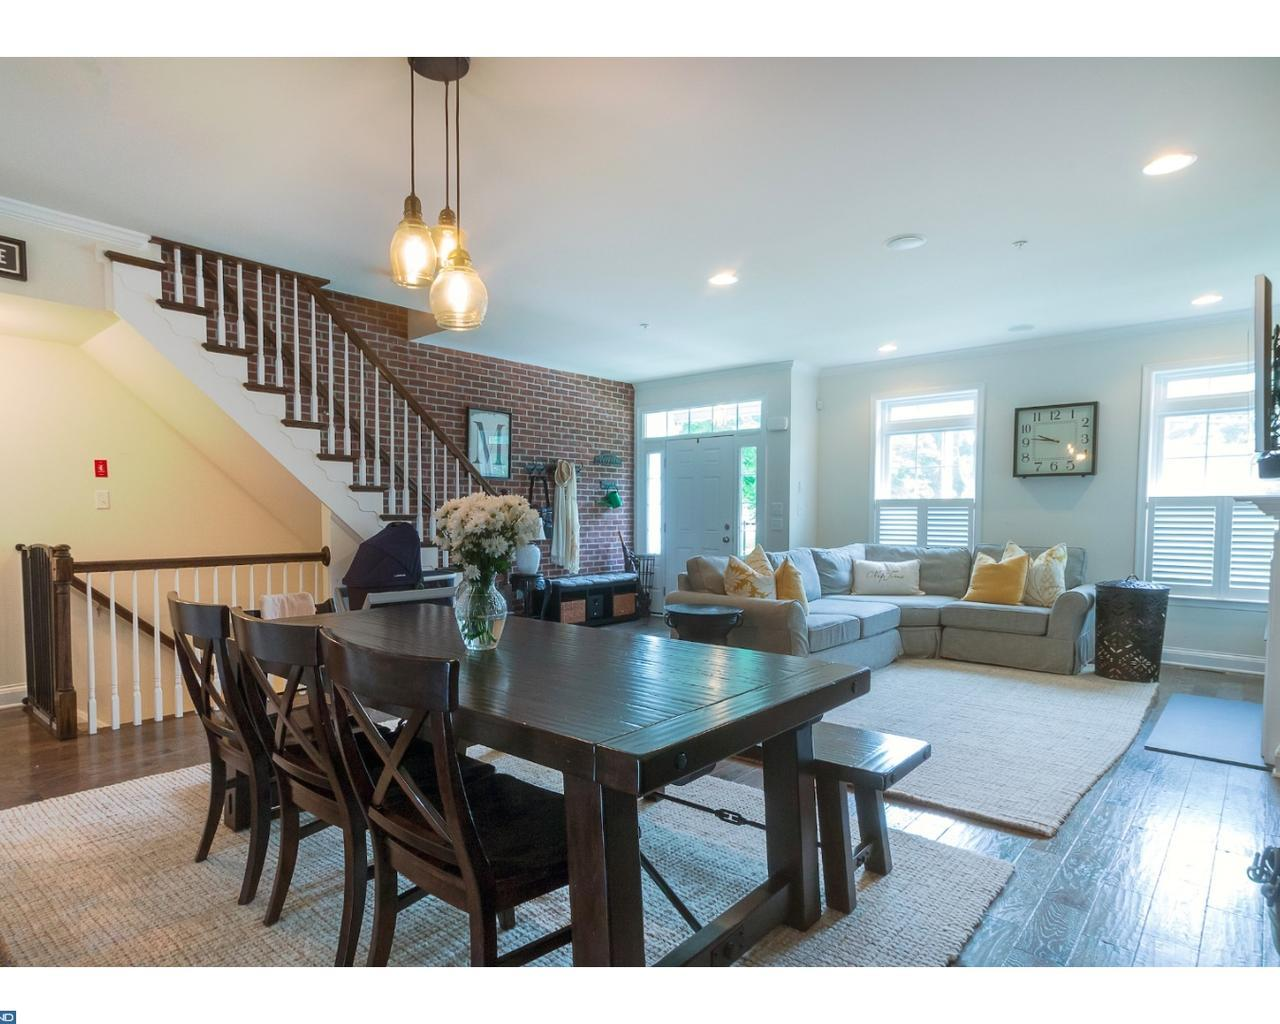 97 n bradford ave for rent west chester pa trulia